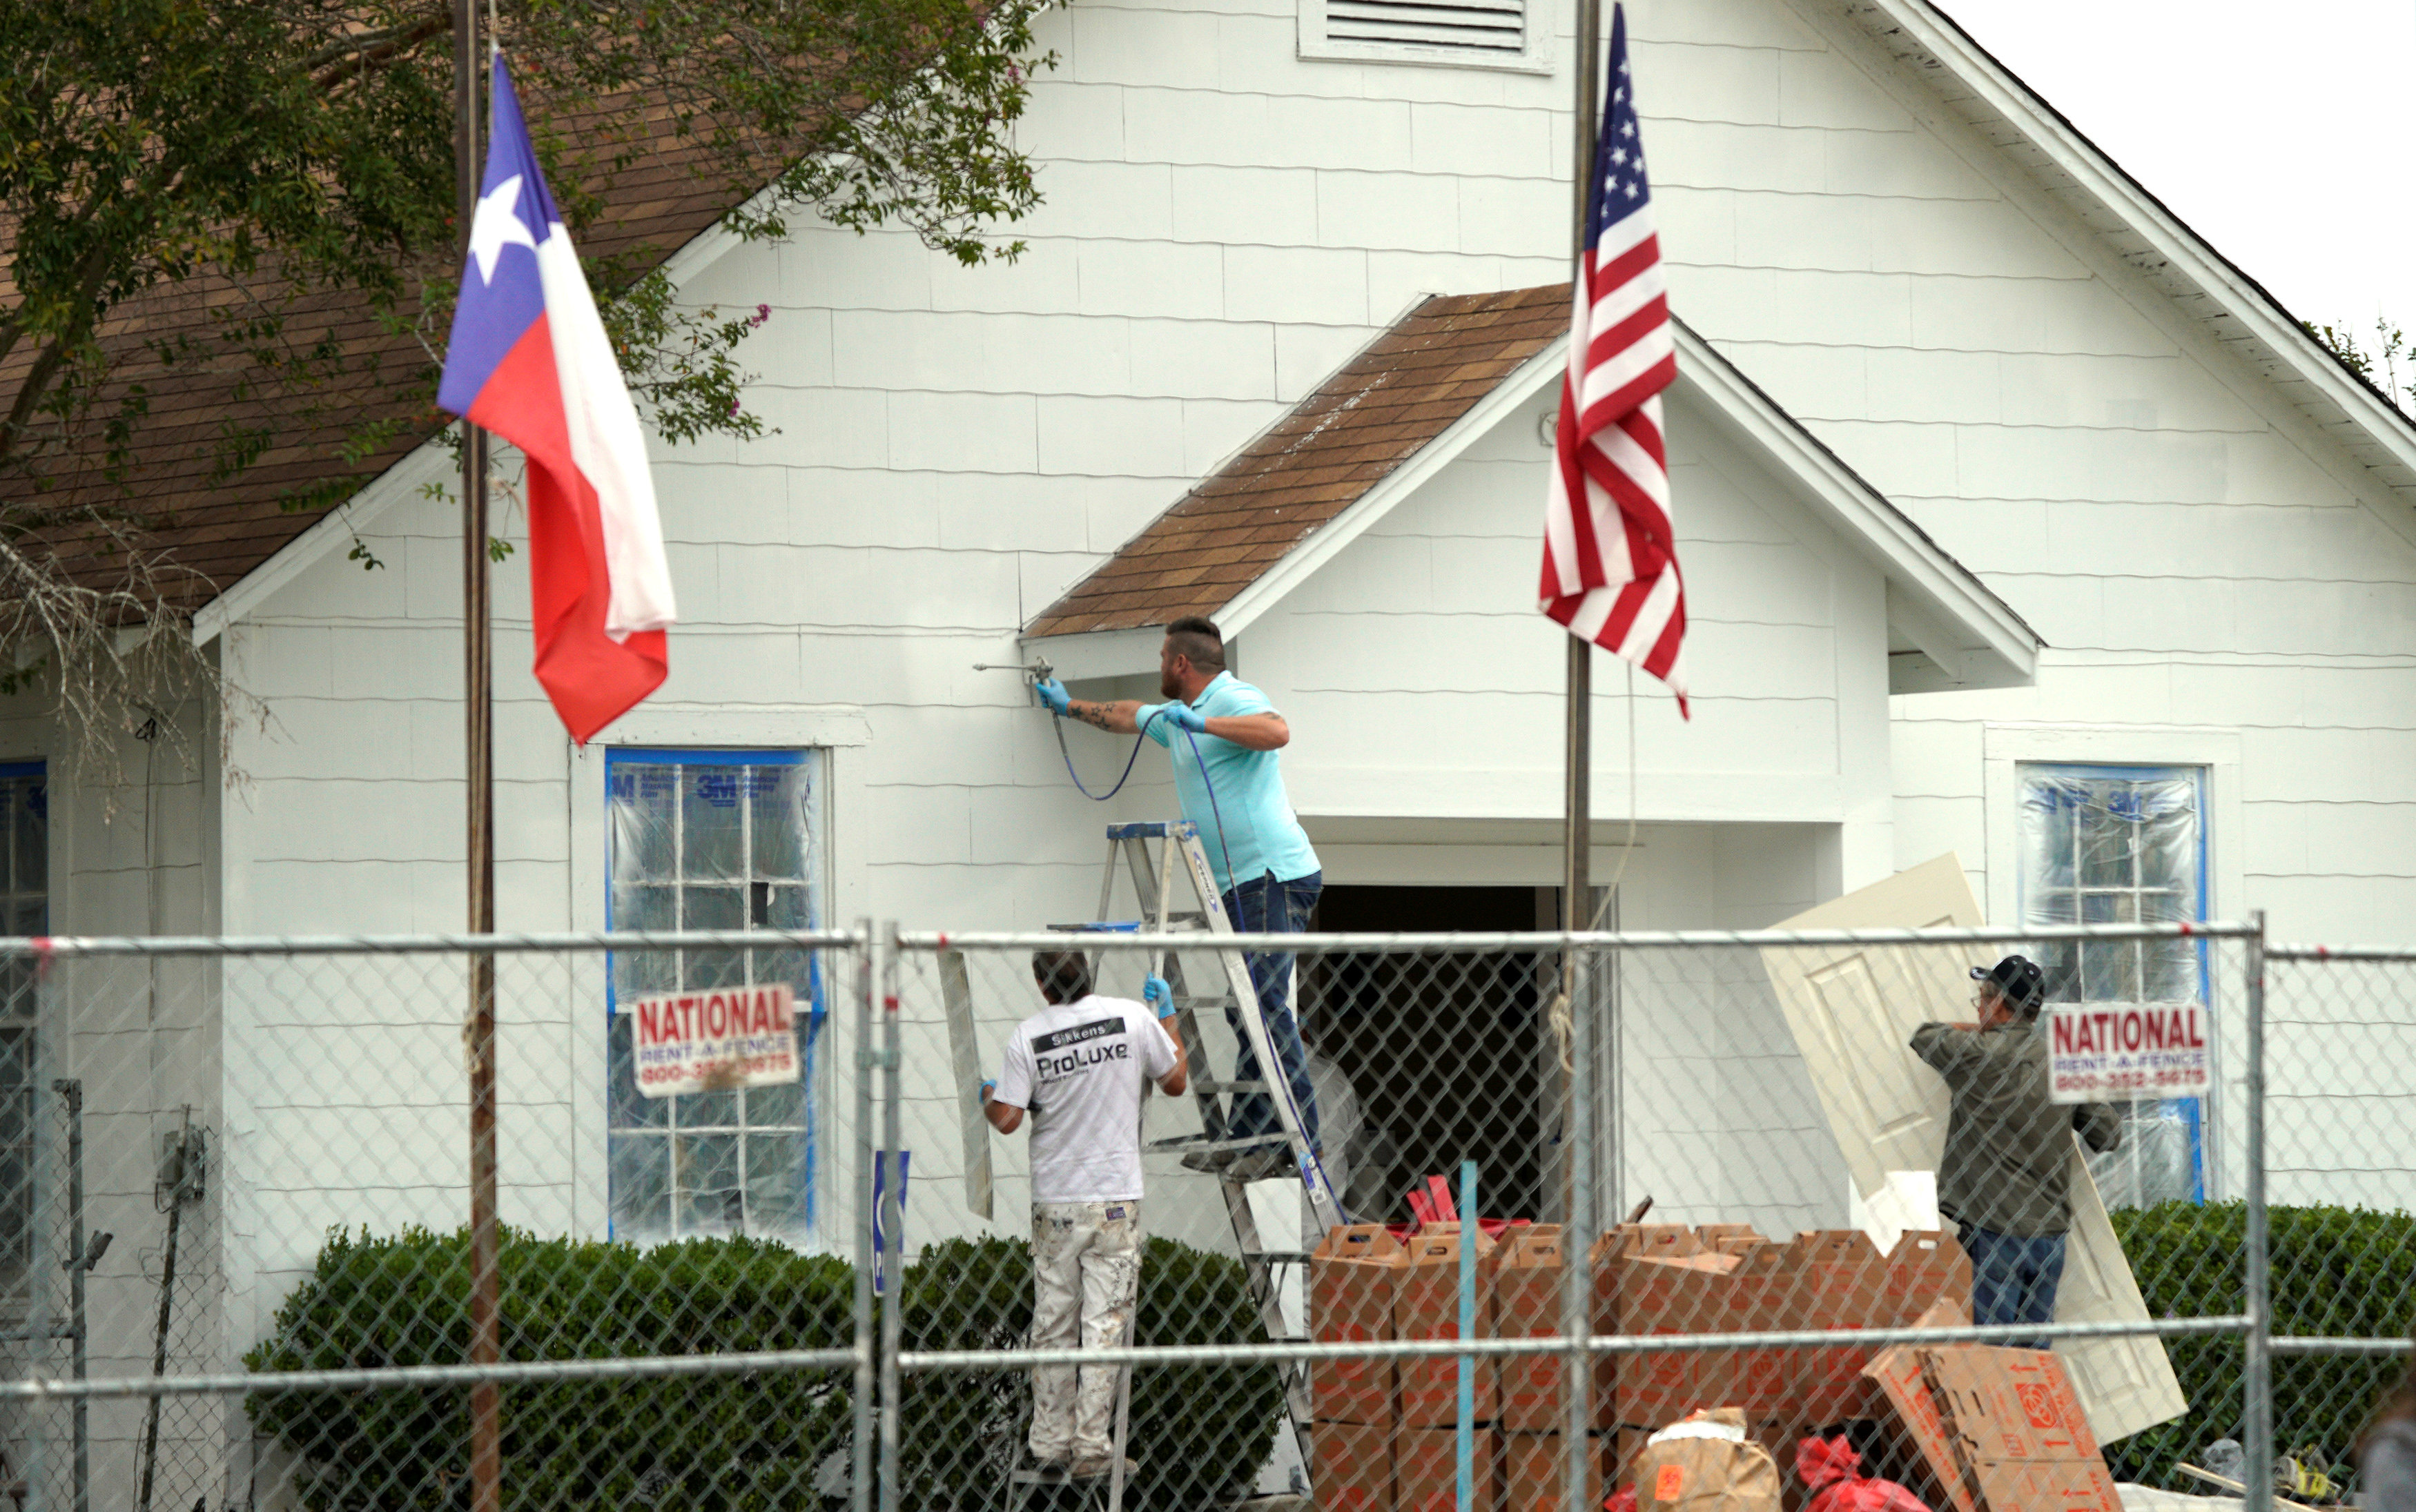 Workers make repairs and paint the site of the shooting at the First Baptist Church of Sutherland Springs, Texas, U.S. November 9, 2017